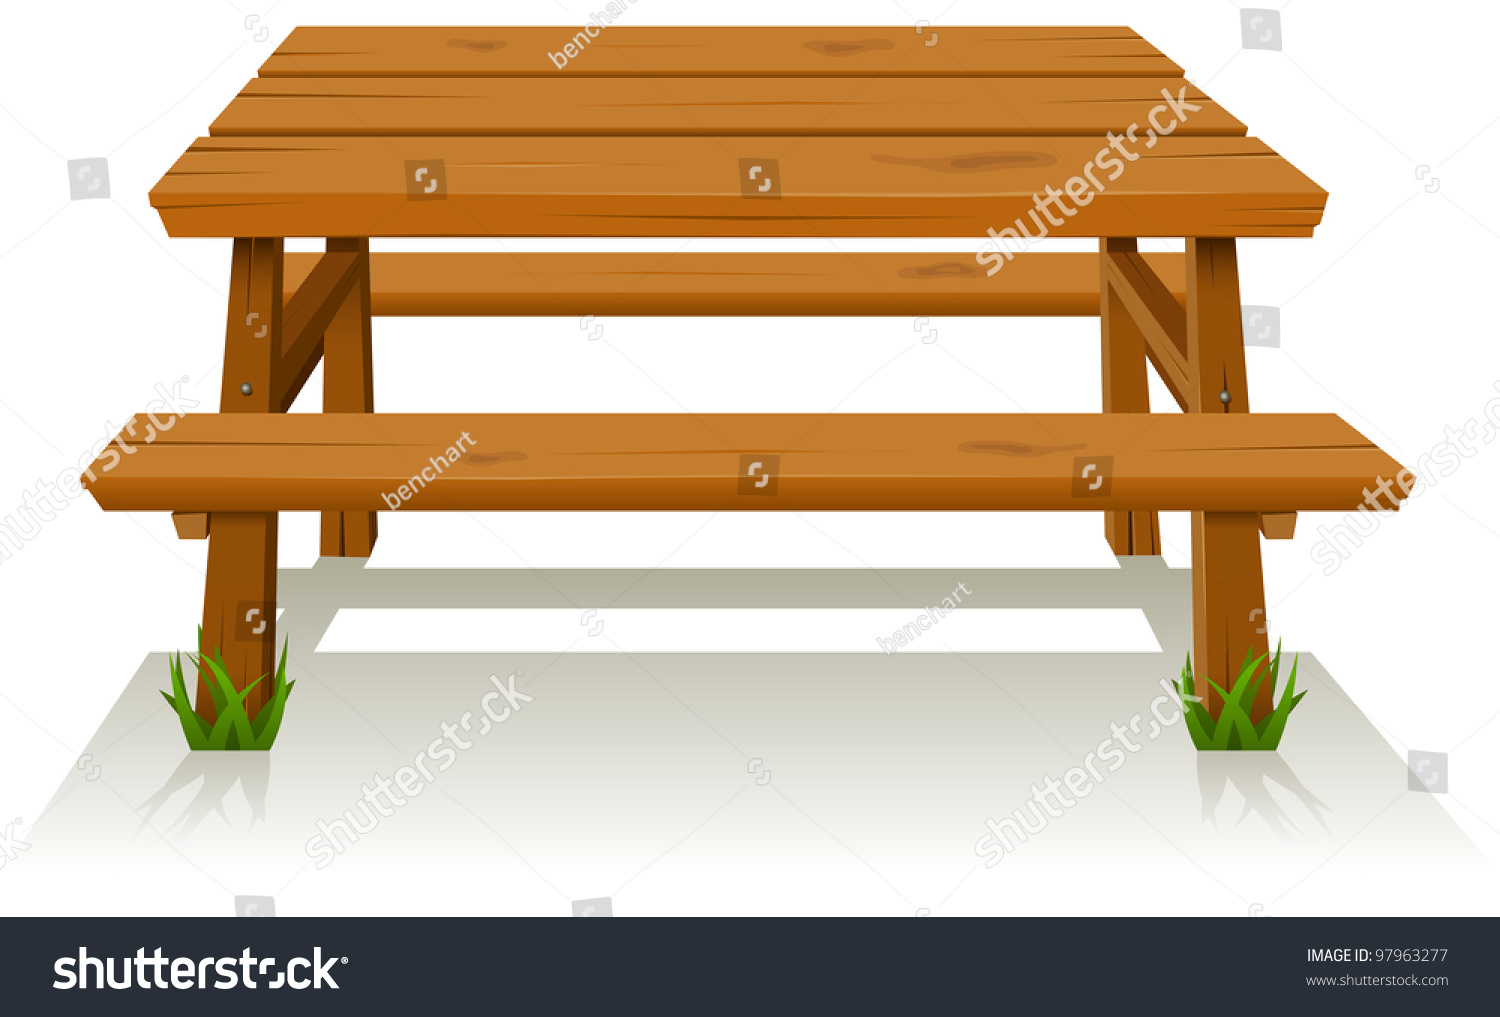 photo-picnic-wood-table-illustration-of-a-cartoon-wooden-picnic-table ...